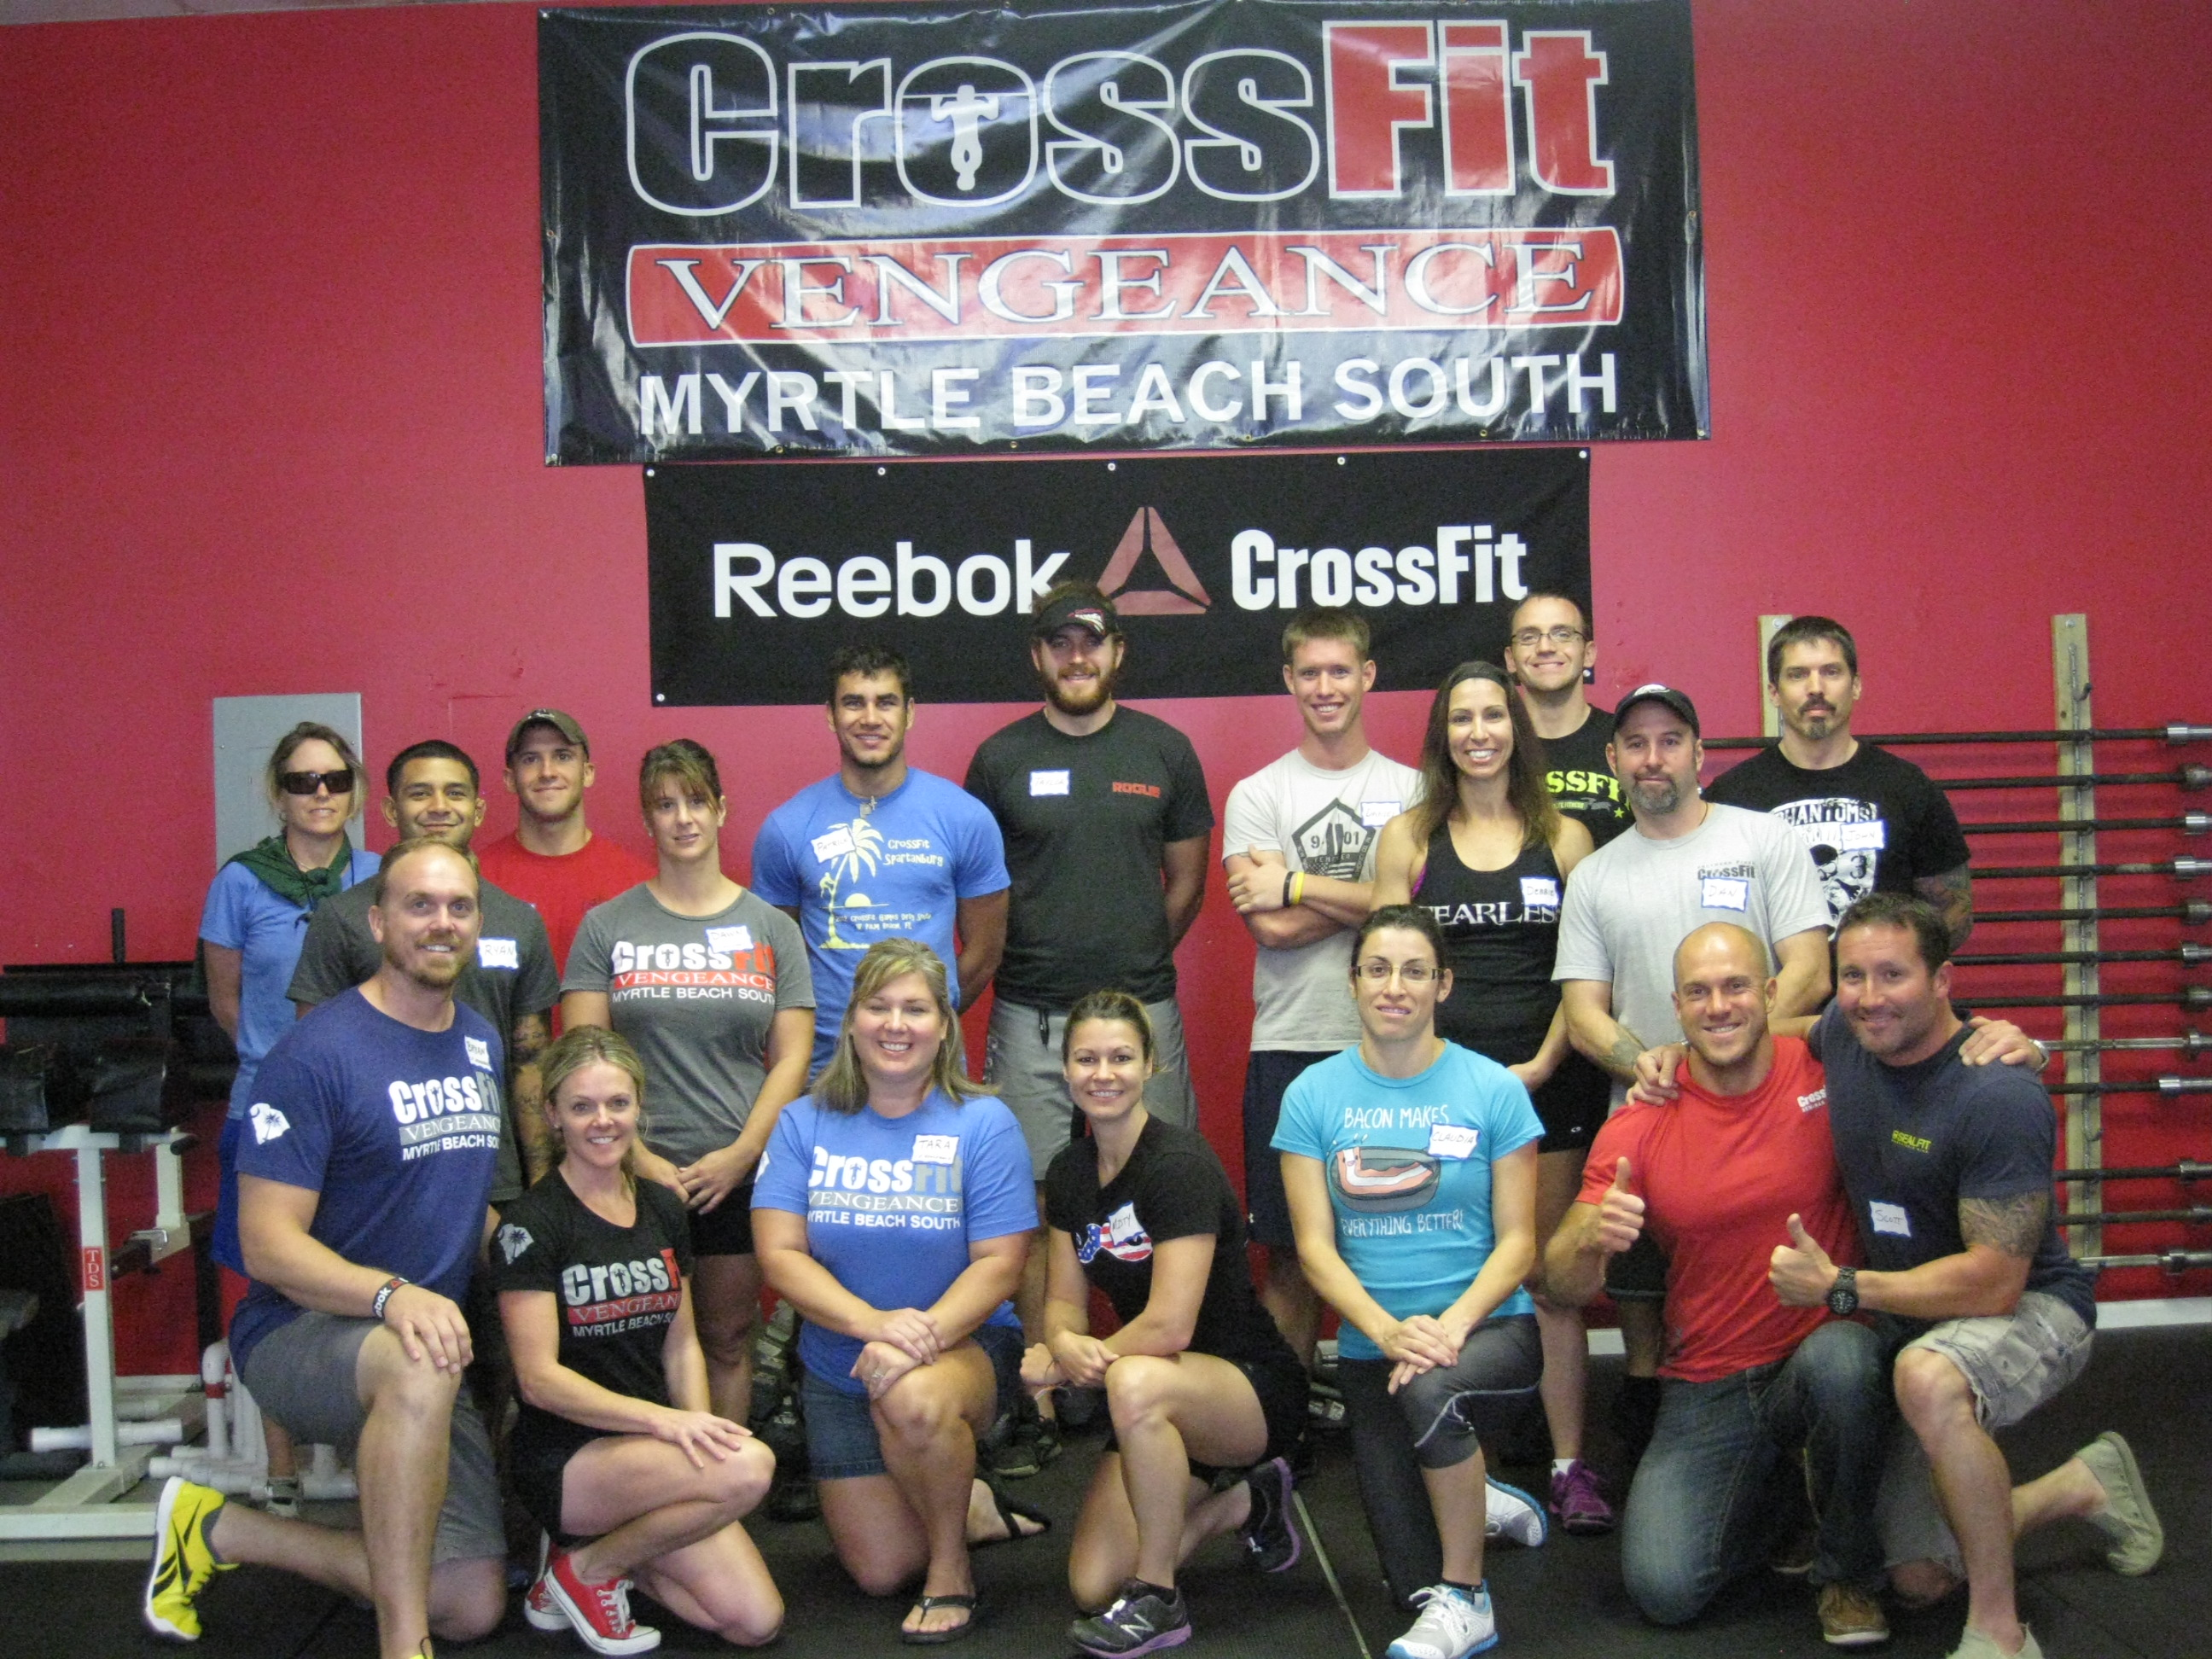 Crossfit myrtle beach area